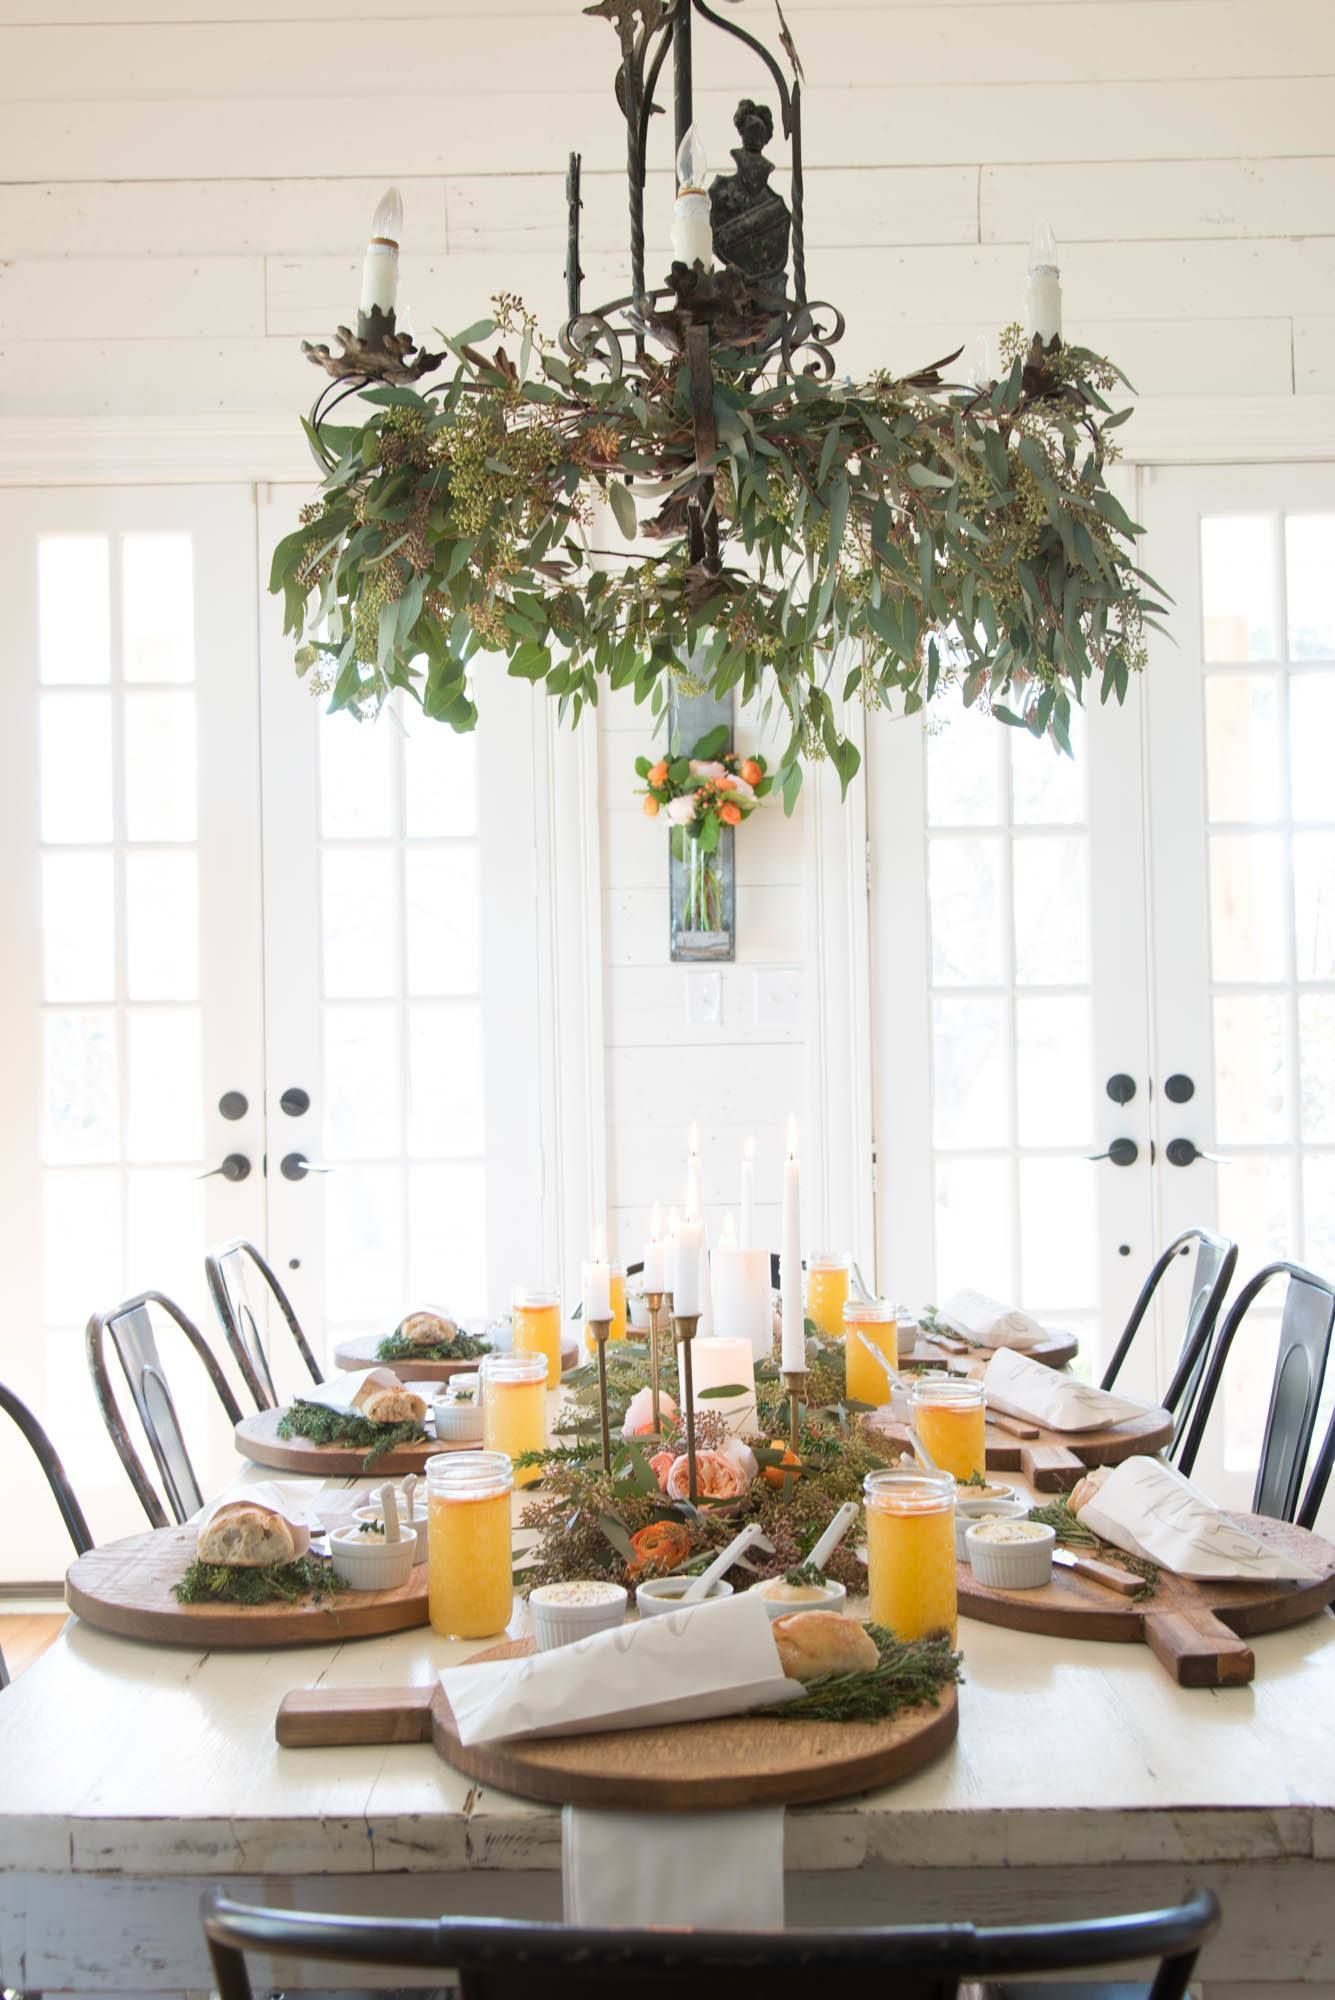 joanna gaines entertains | White napkins, Joanna gaines and Place ...